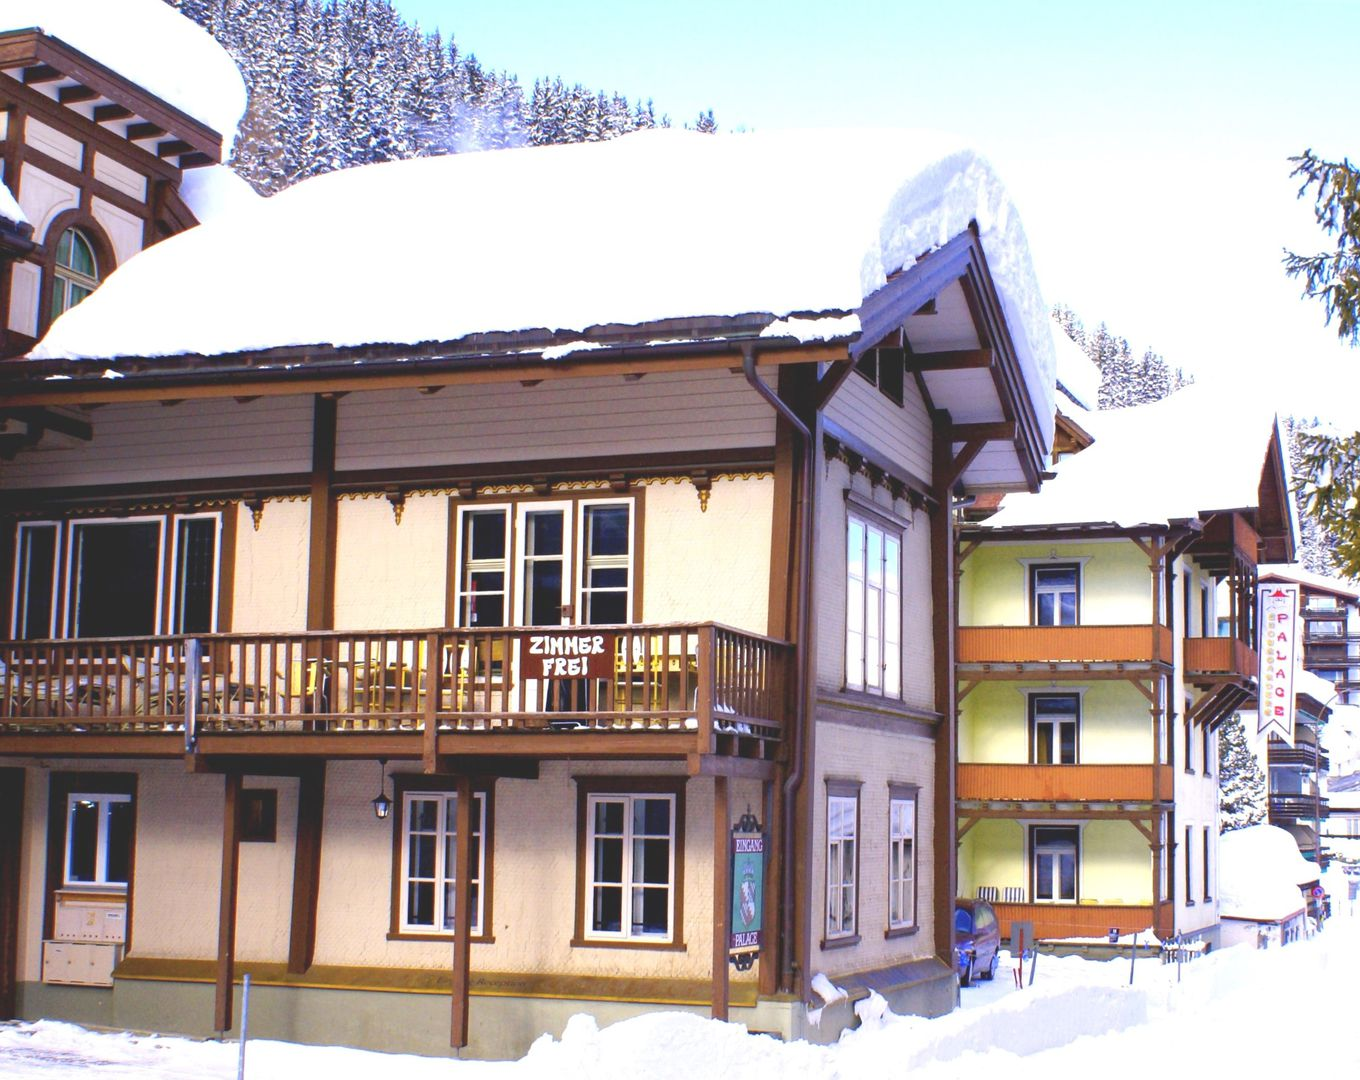 snowboarders palace